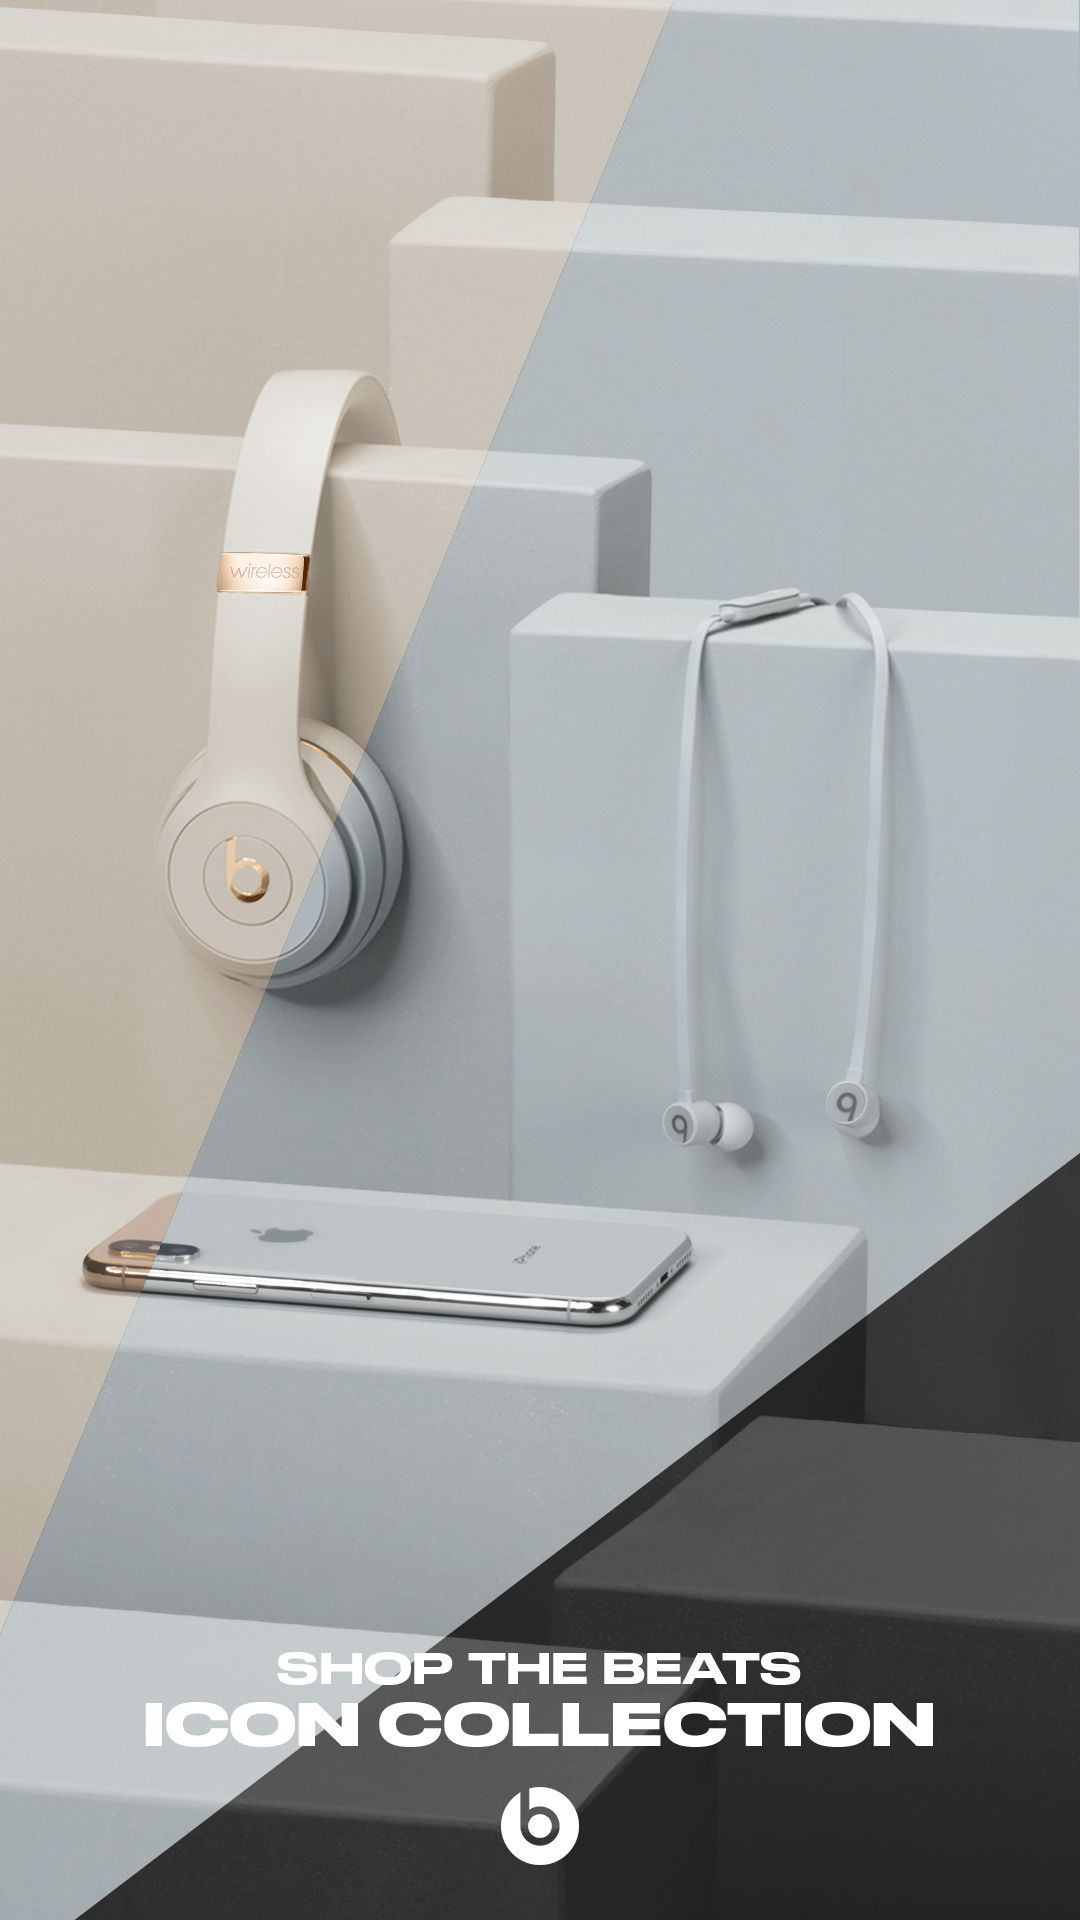 f56cb09c636 Shop the Beats Icon Collection for wireless headphones and earphones in  elegant colors like Satin Gold, Satin Silver and Black to match the new  iPhone.